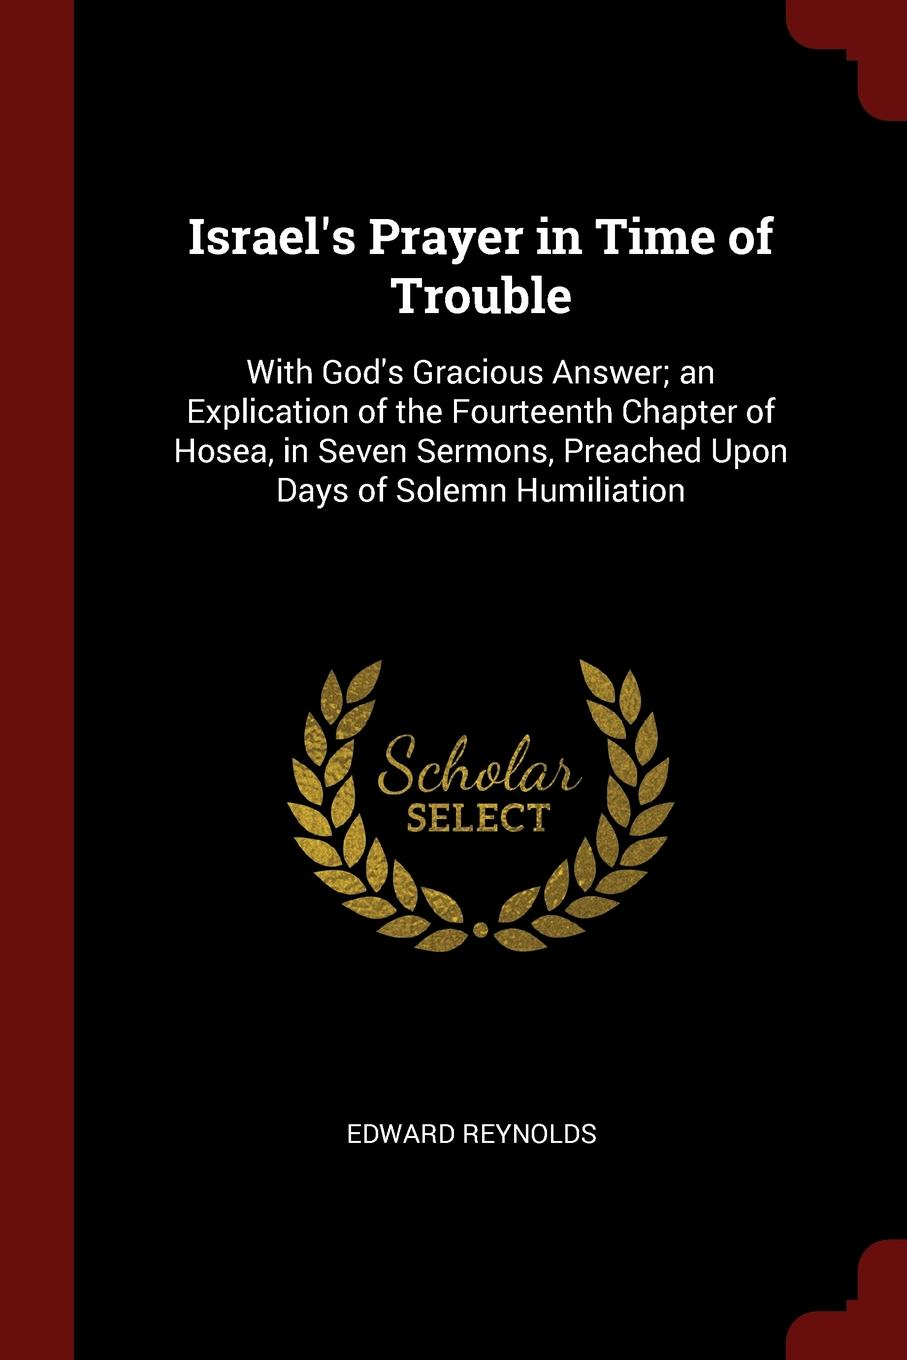 Edward Reynolds Israel.s Prayer in Time of Trouble. With God.s Gracious Answer; an Explication of the Fourteenth Chapter of Hosea, in Seven Sermons, Preached Upon Days of Solemn Humiliation